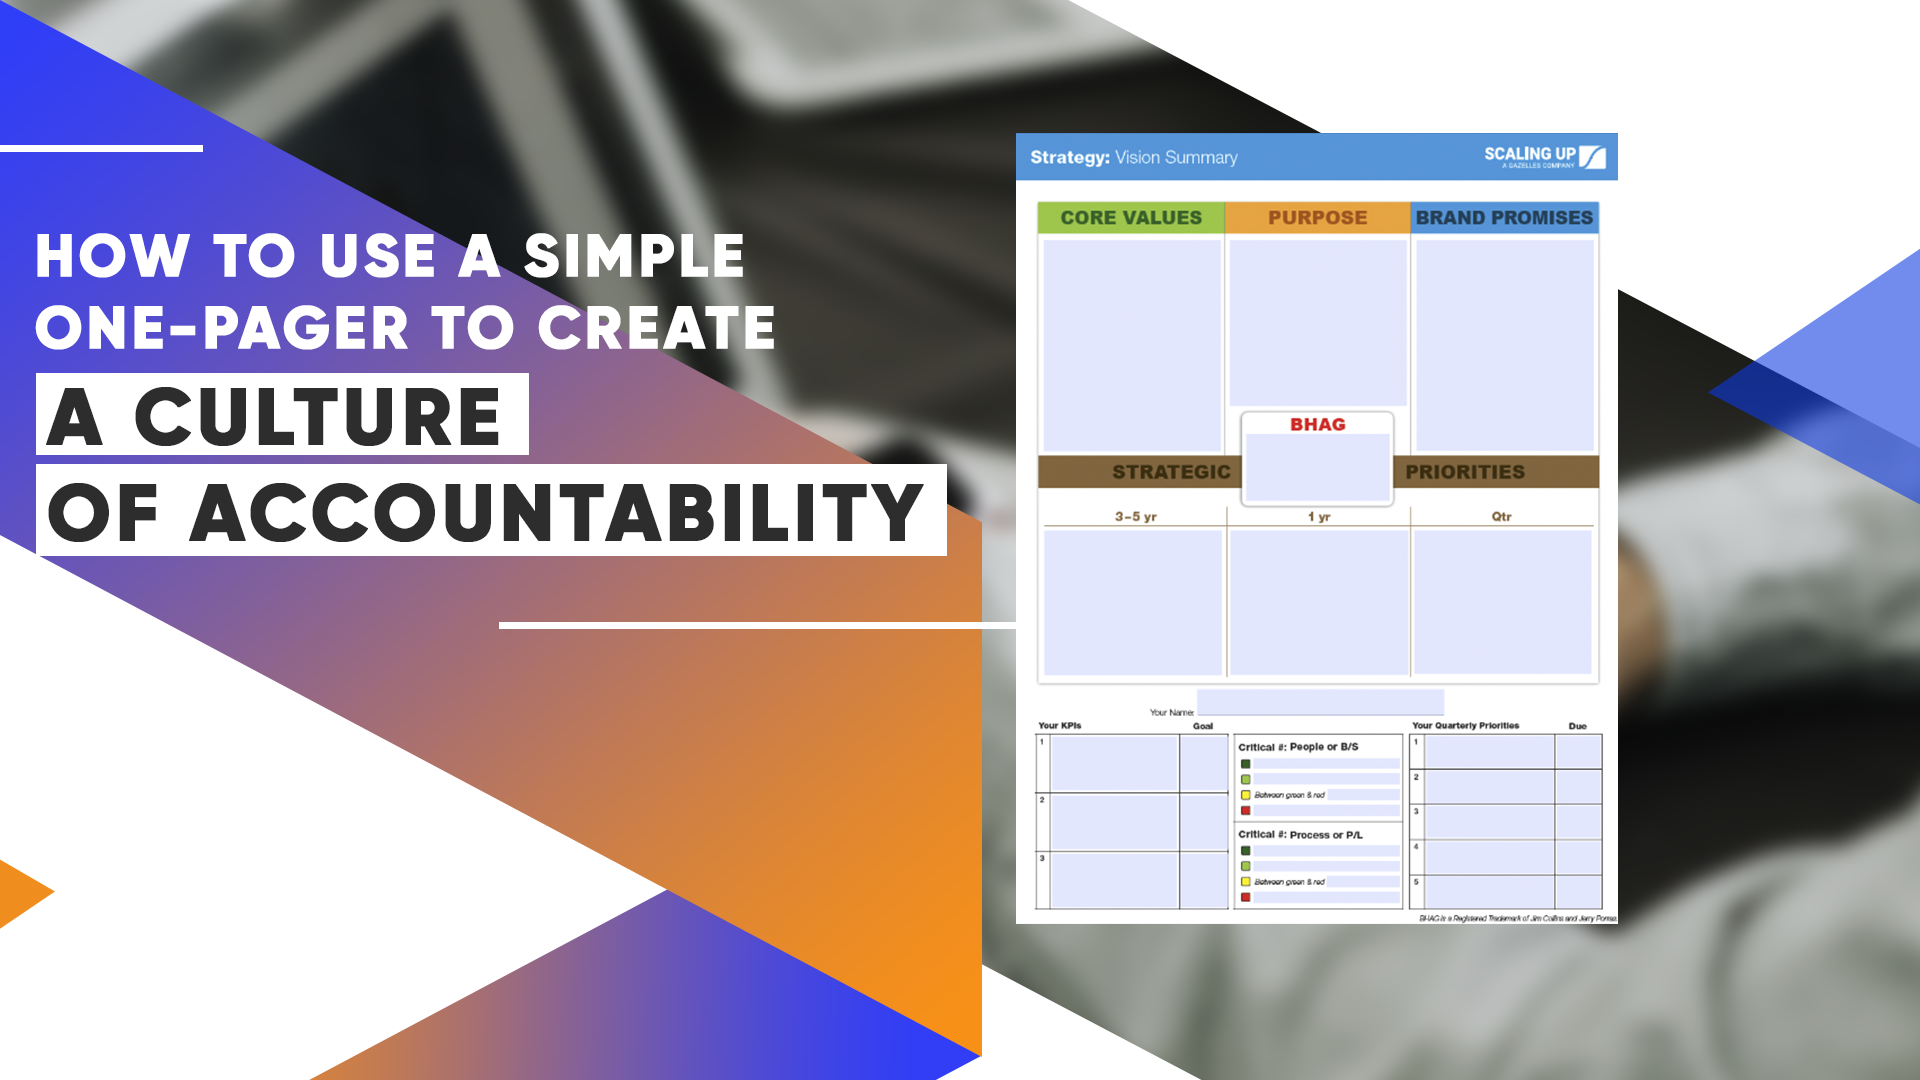 How To Use A Simple One-Pager To Create A Culture Of Accountability